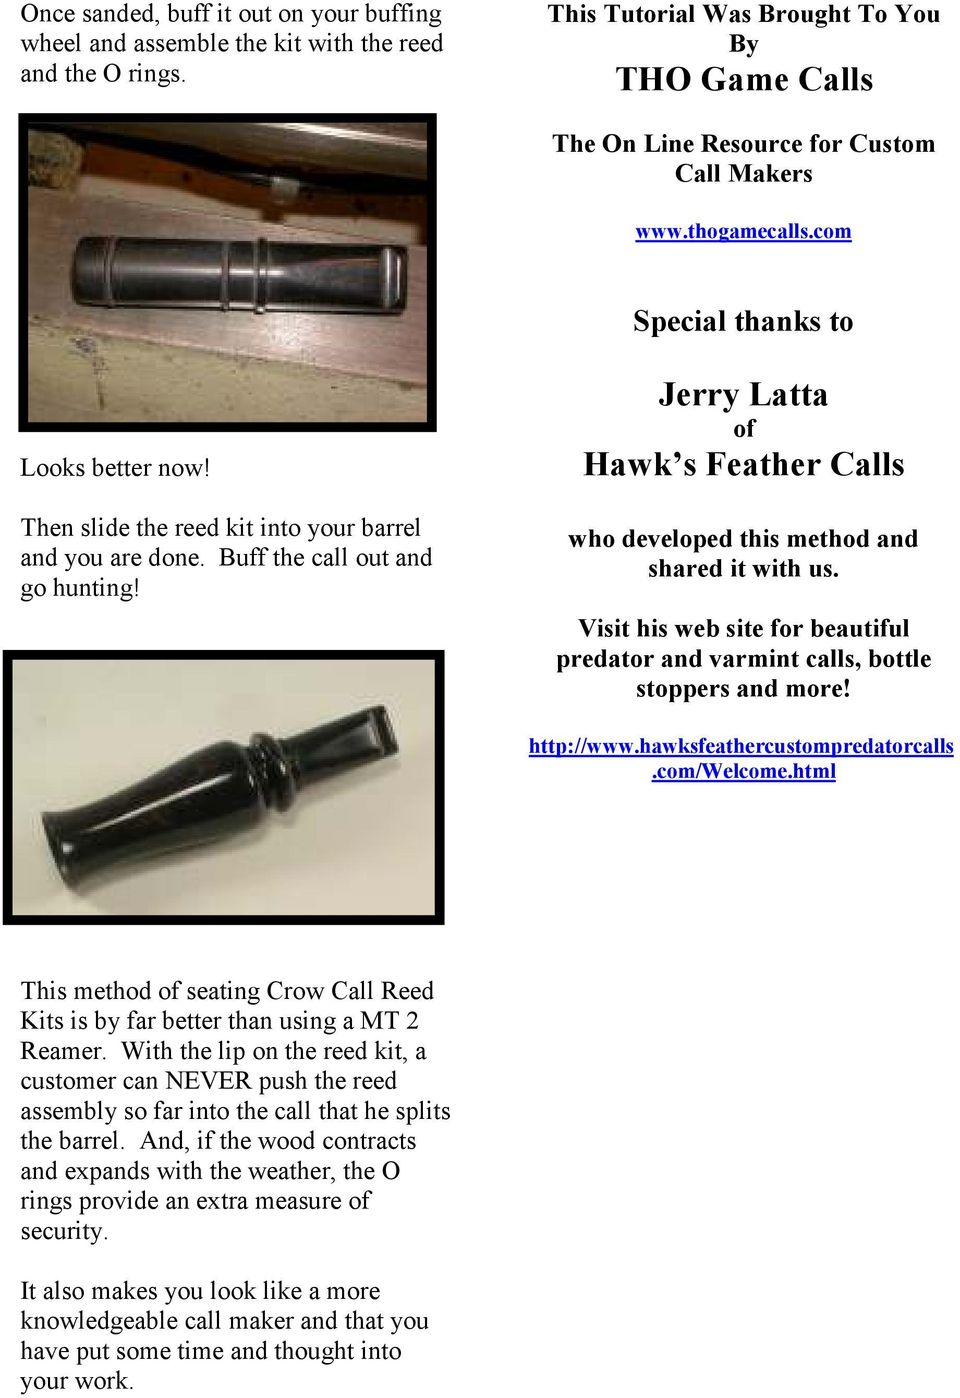 Turning Crow Calls -The Latta Method- - PDF